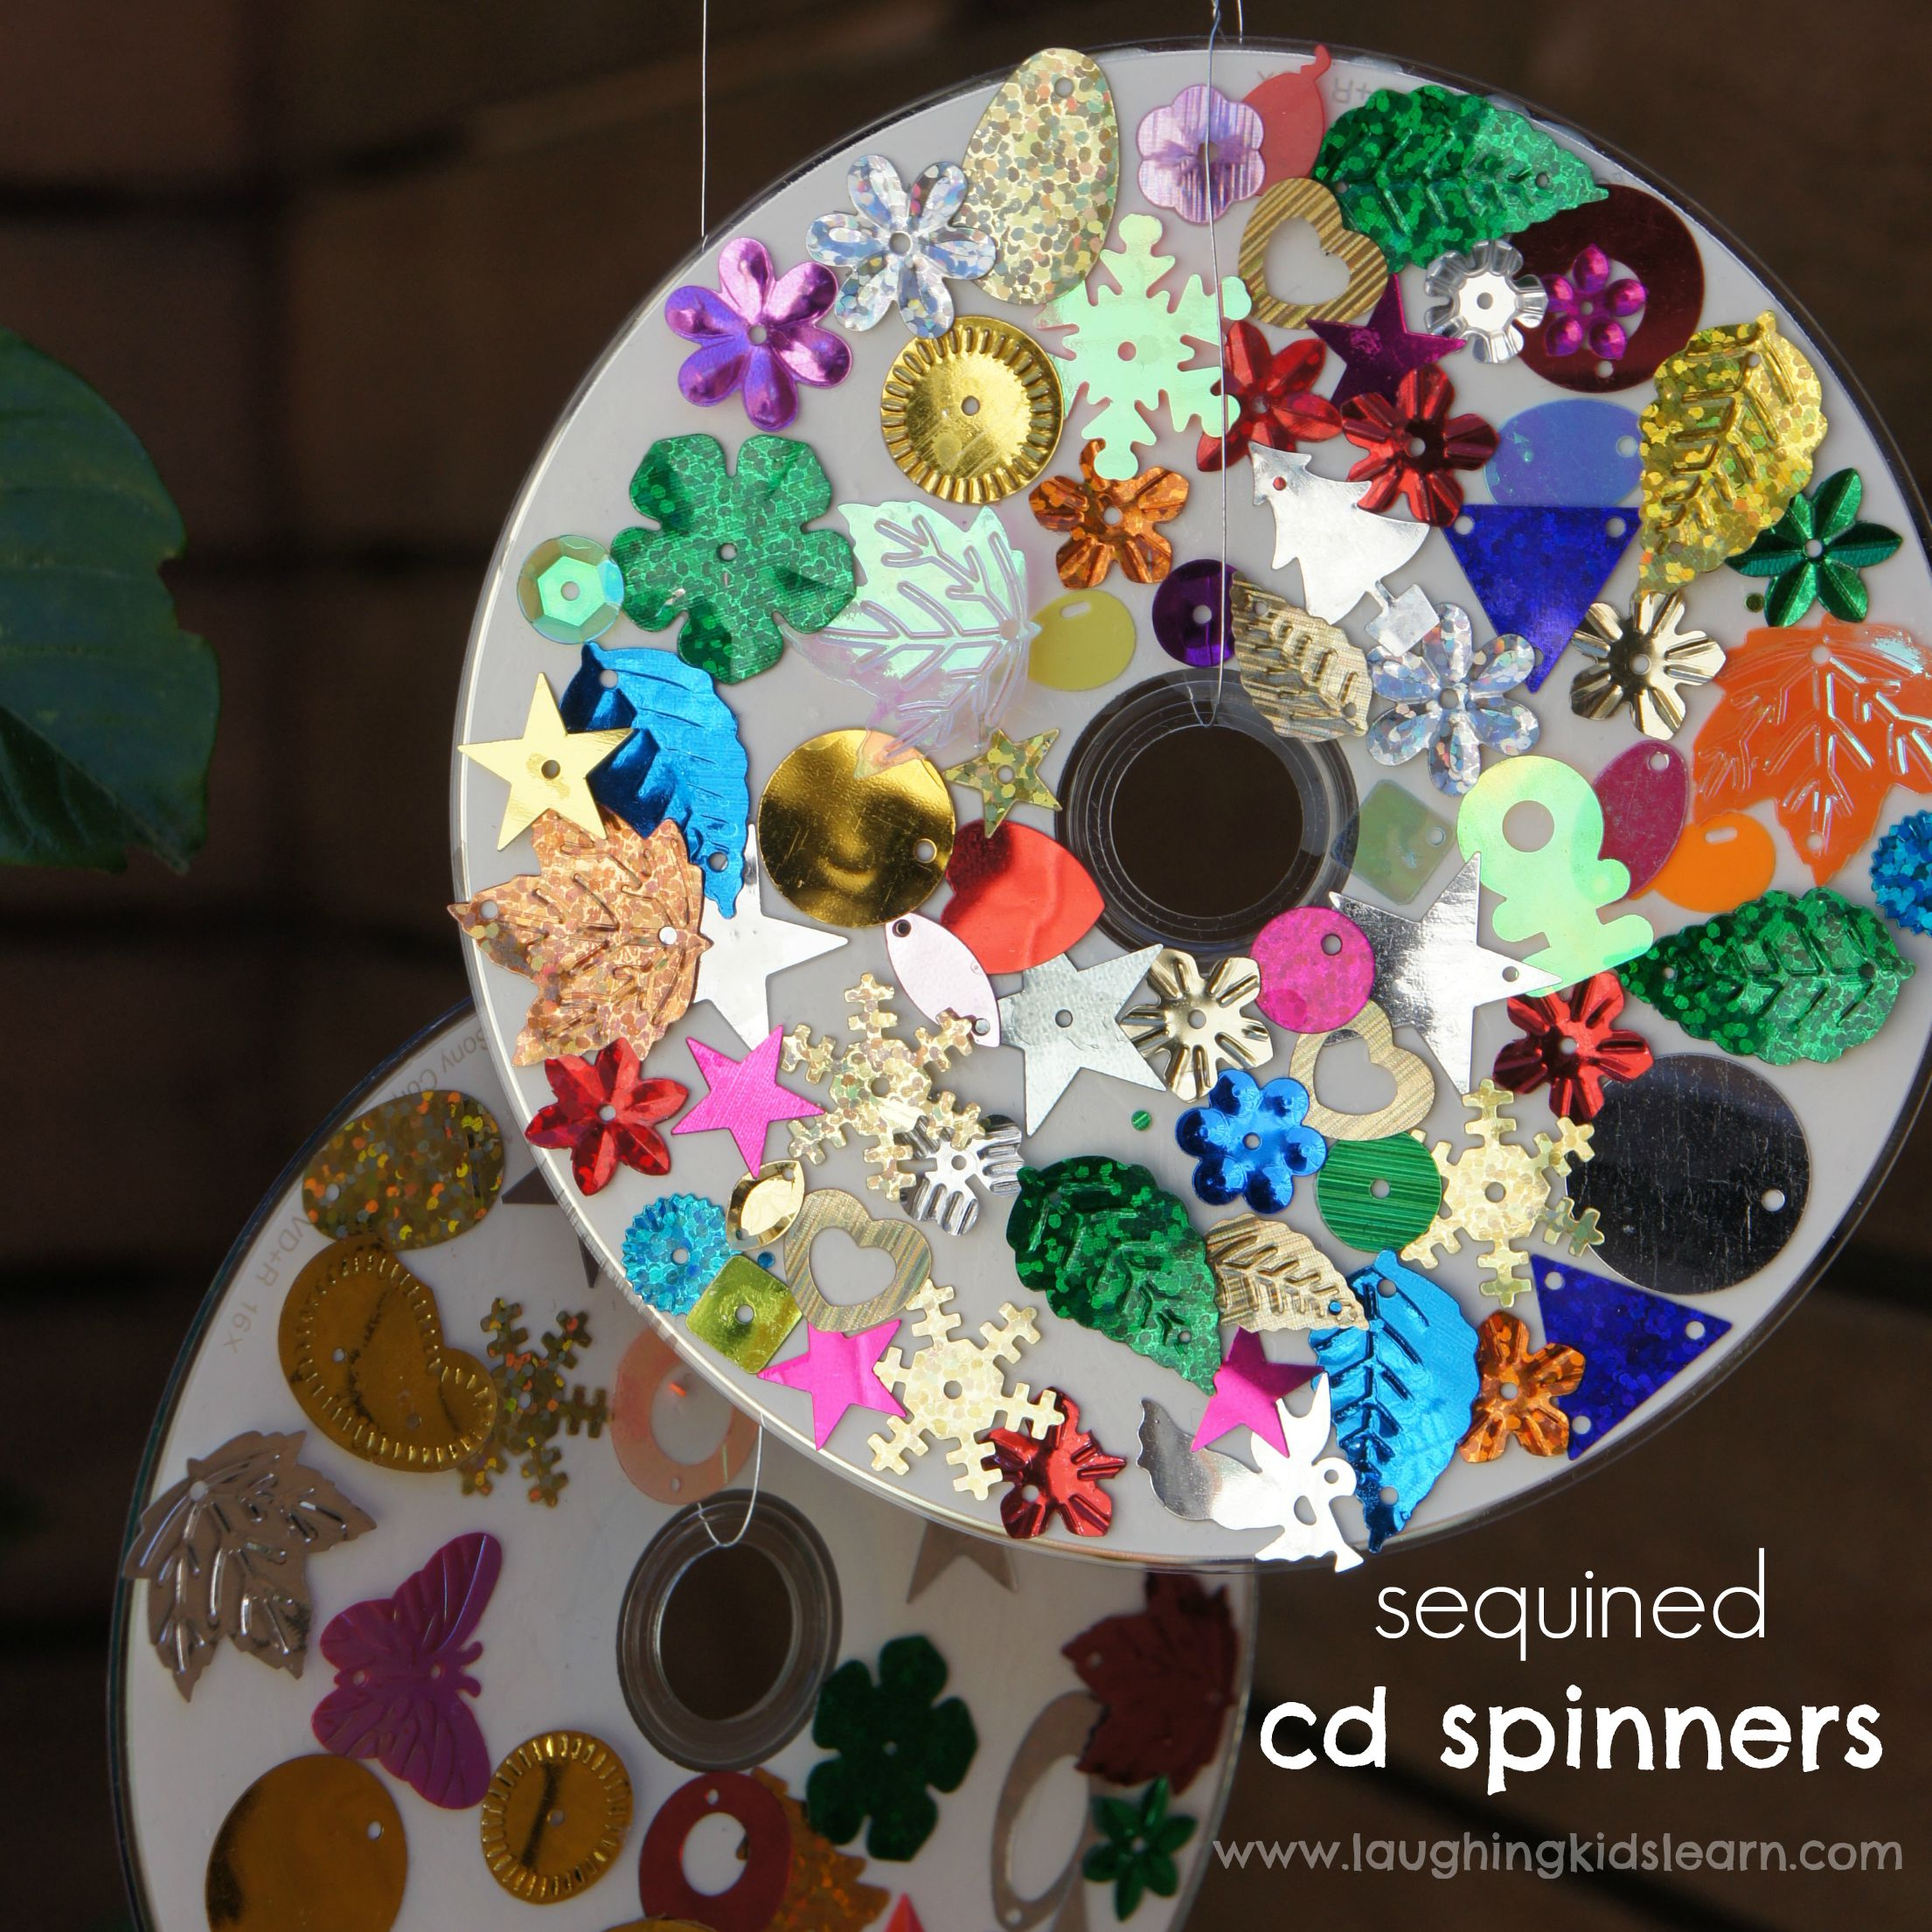 Facebook cd spinners